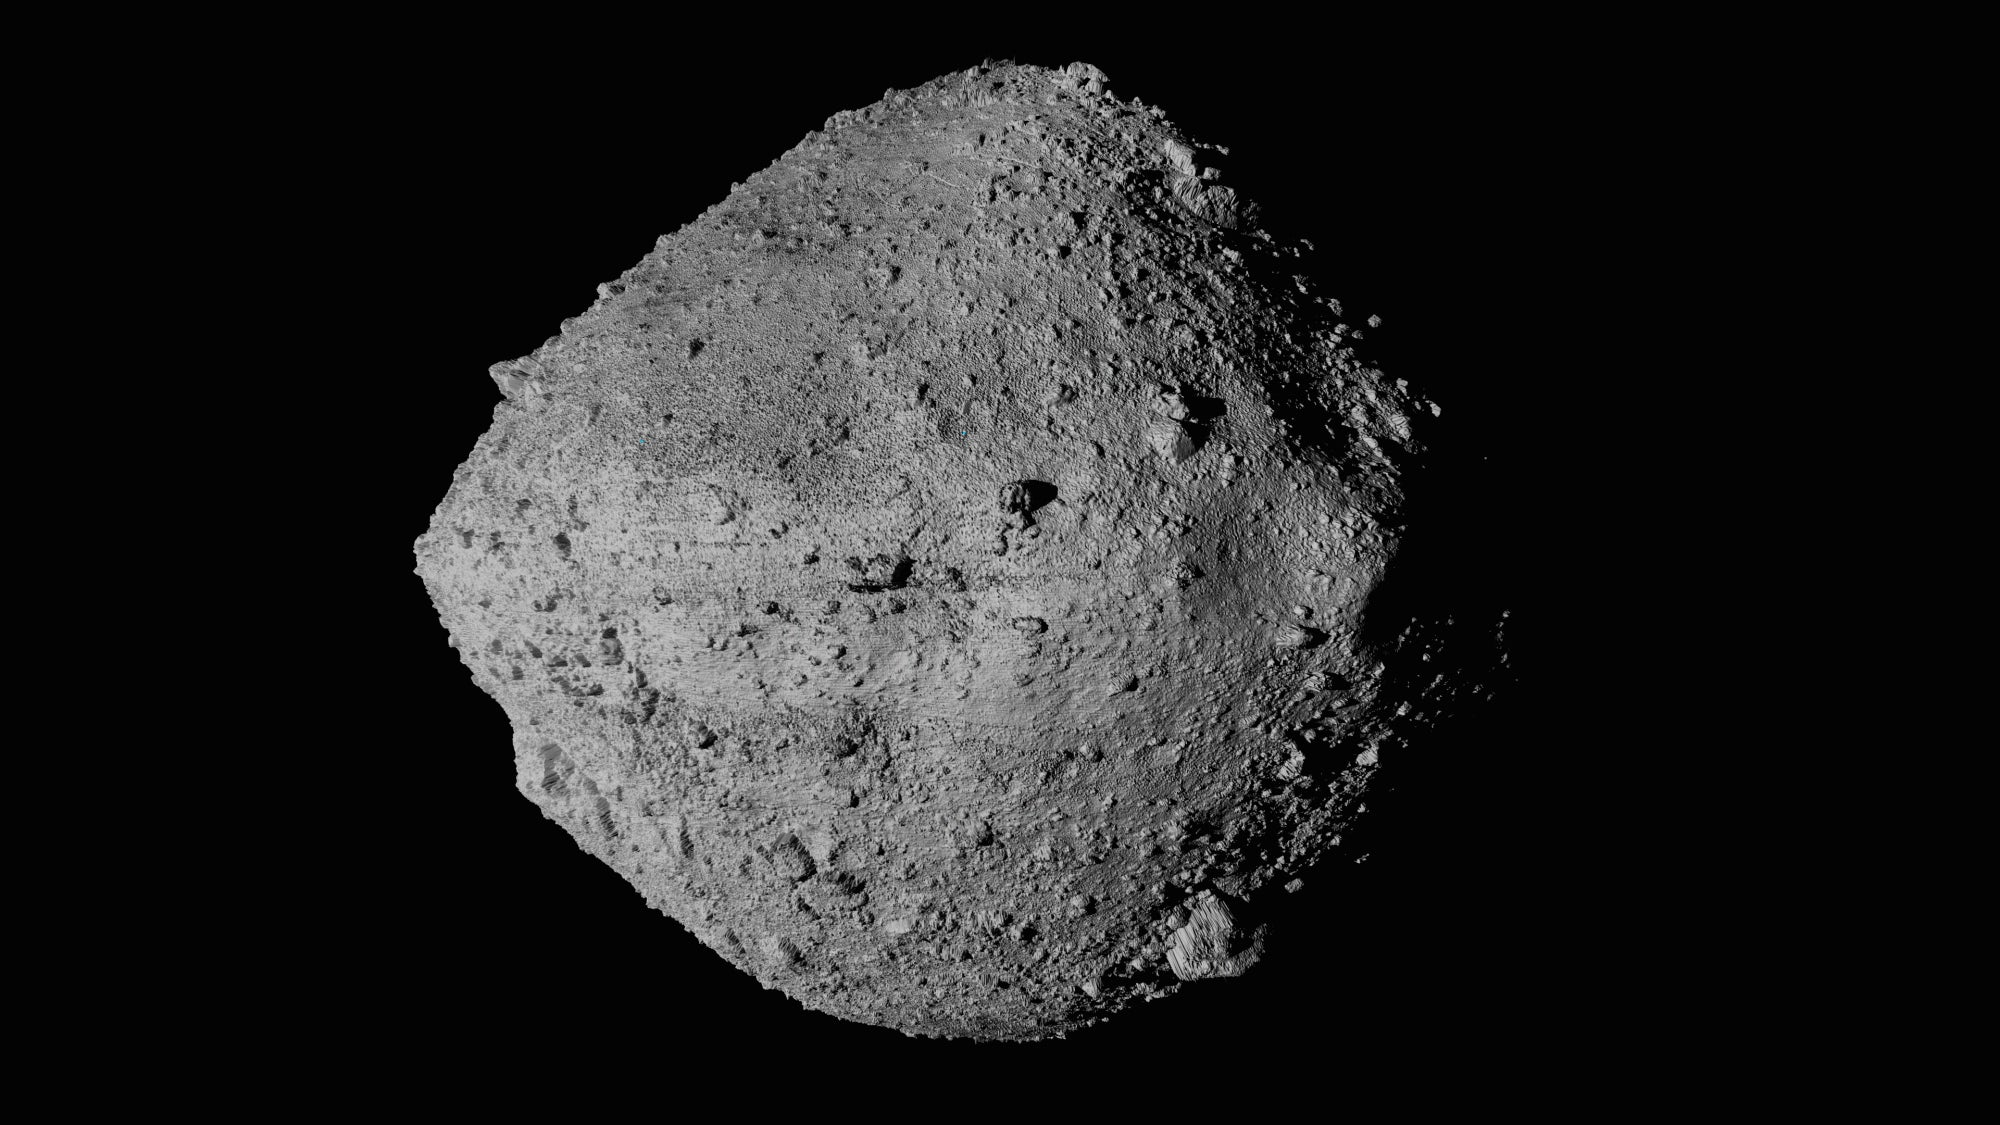 NASA spacecraft descends to asteroid's surface for rare sample collection